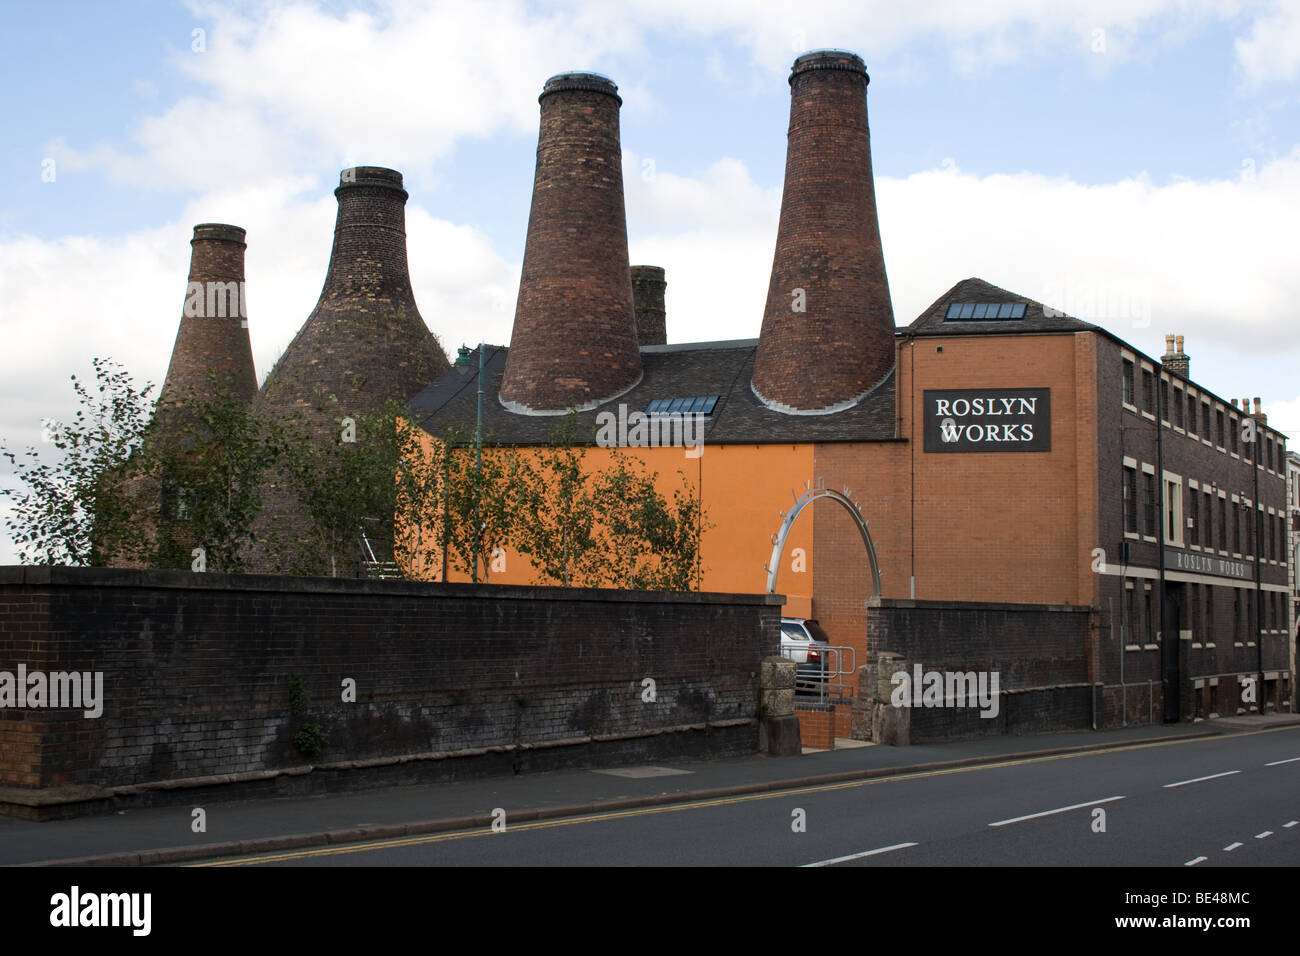 Roslyn Works, Pottery Factory, Longton, Stoke-on-Trent - Stock Image